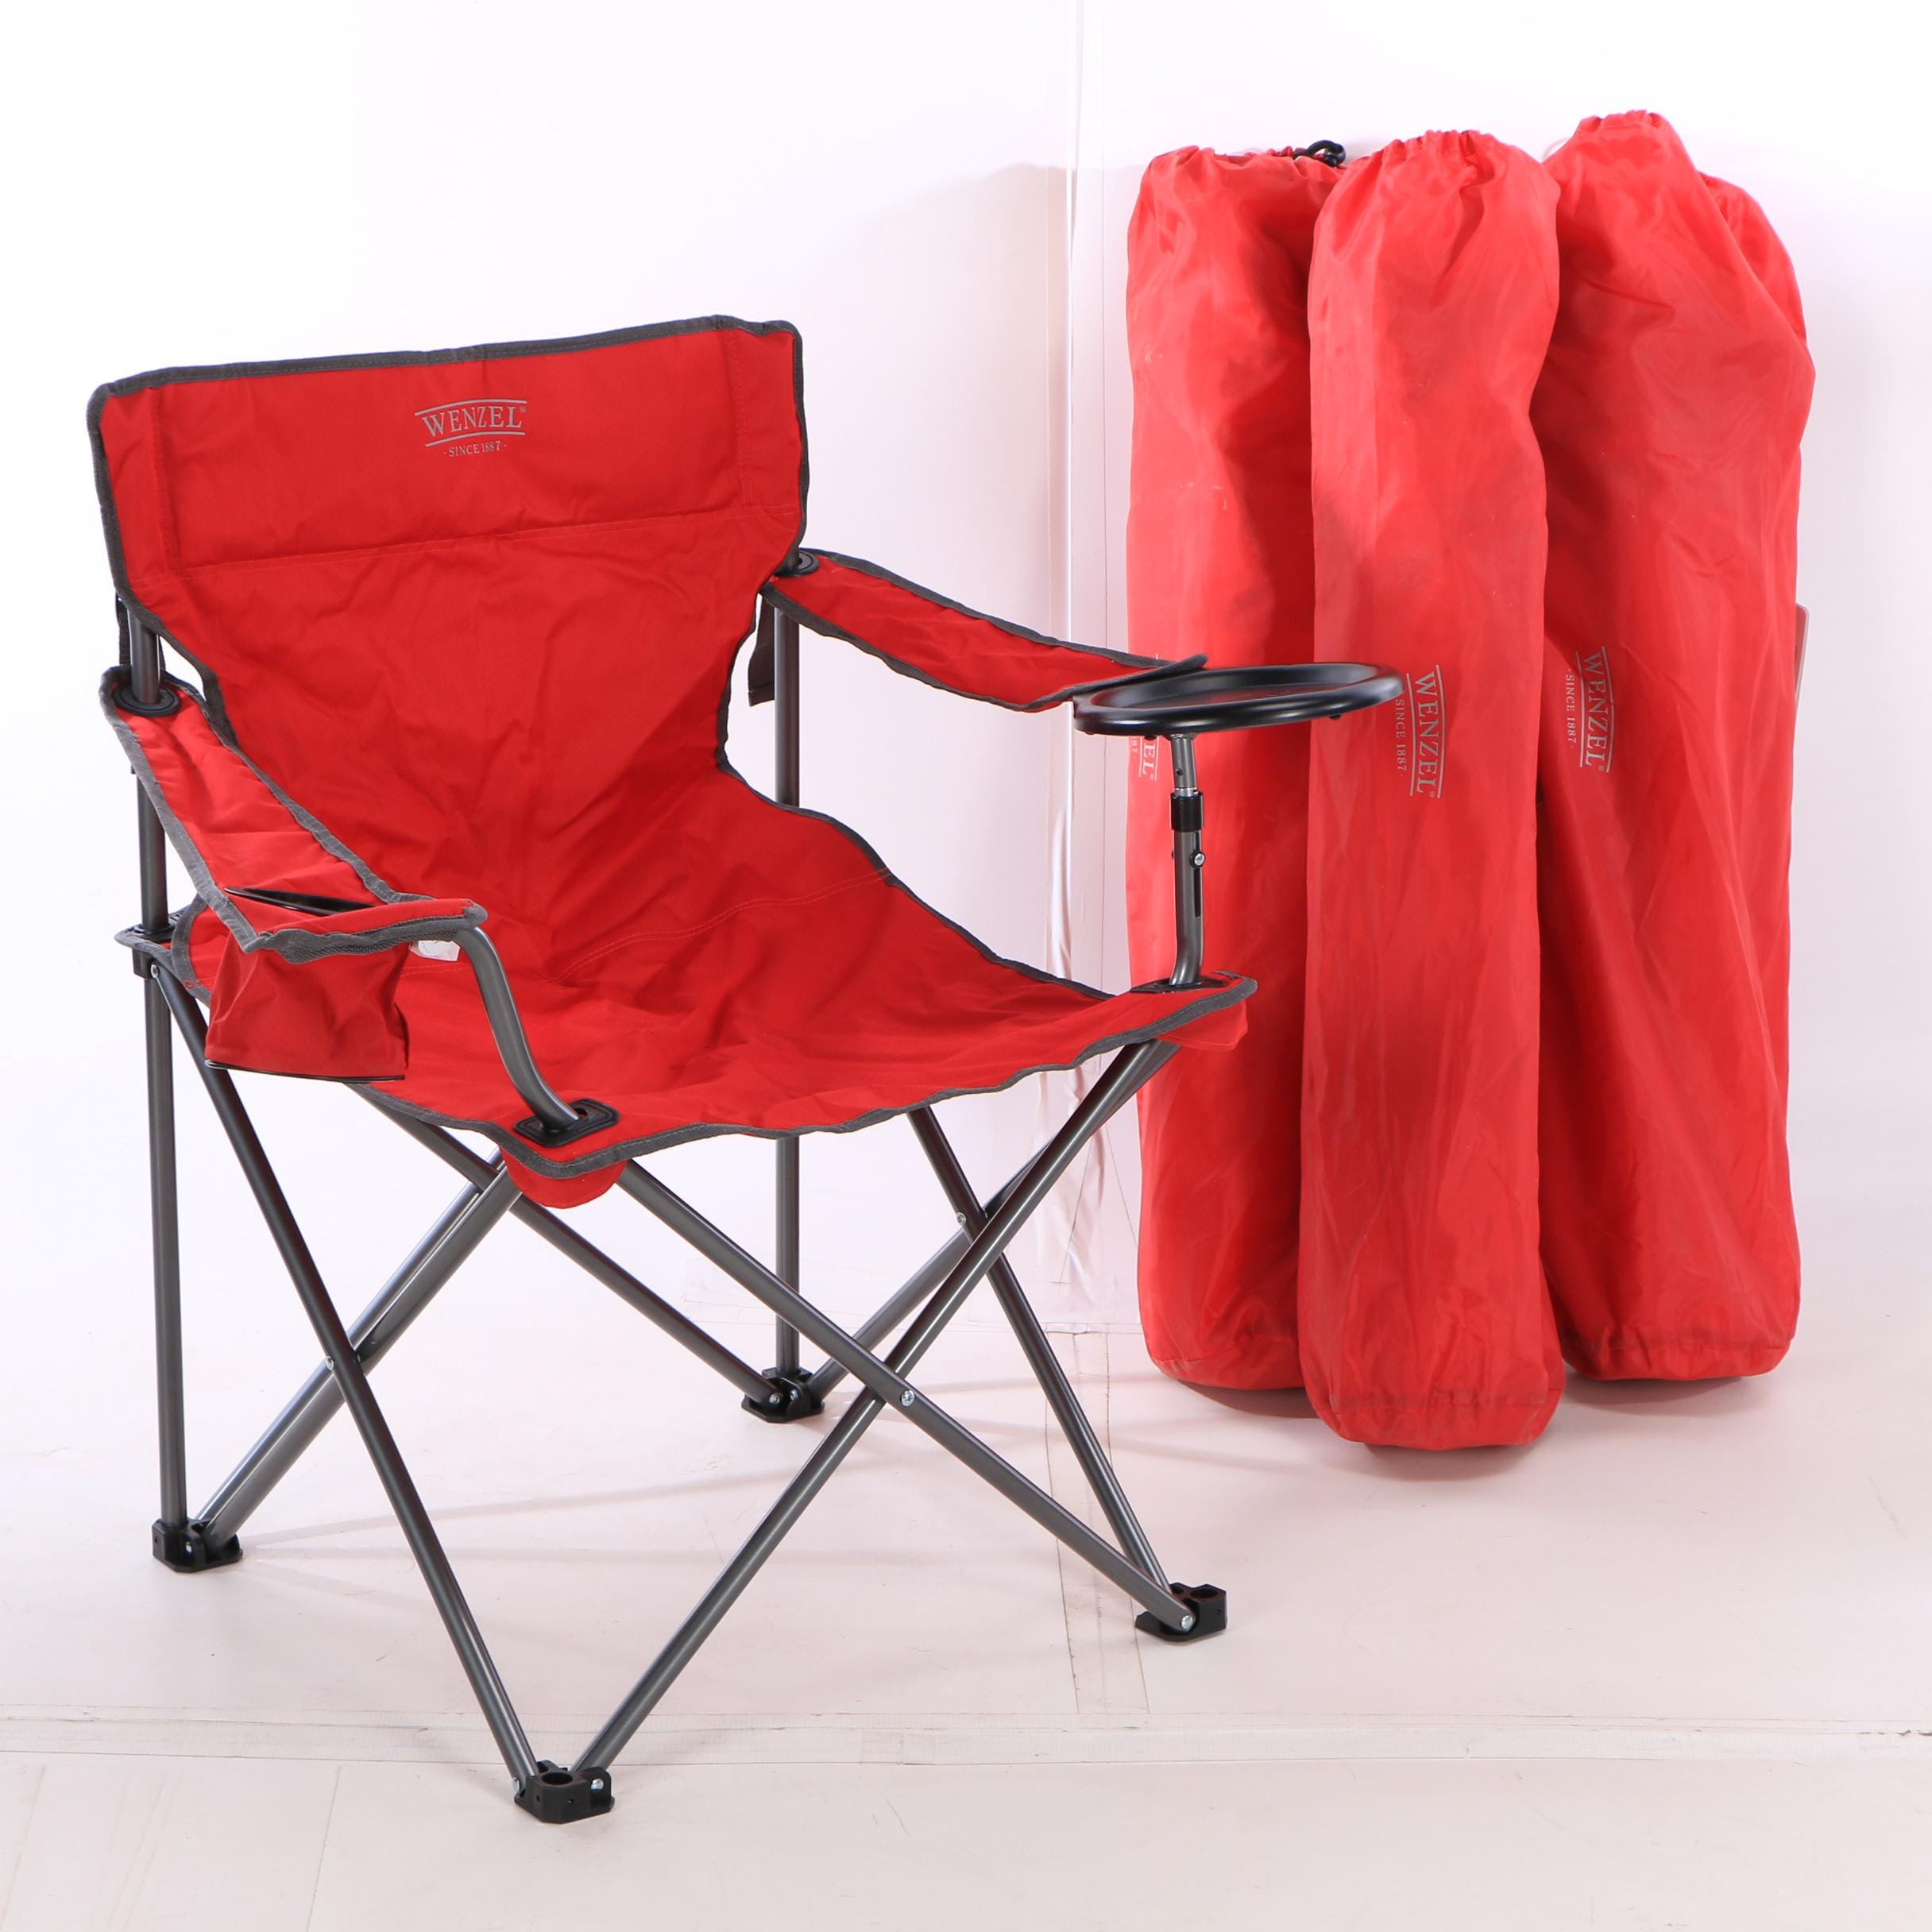 Wenzel Red Outdoor Banquet Chair Set, Extra Large